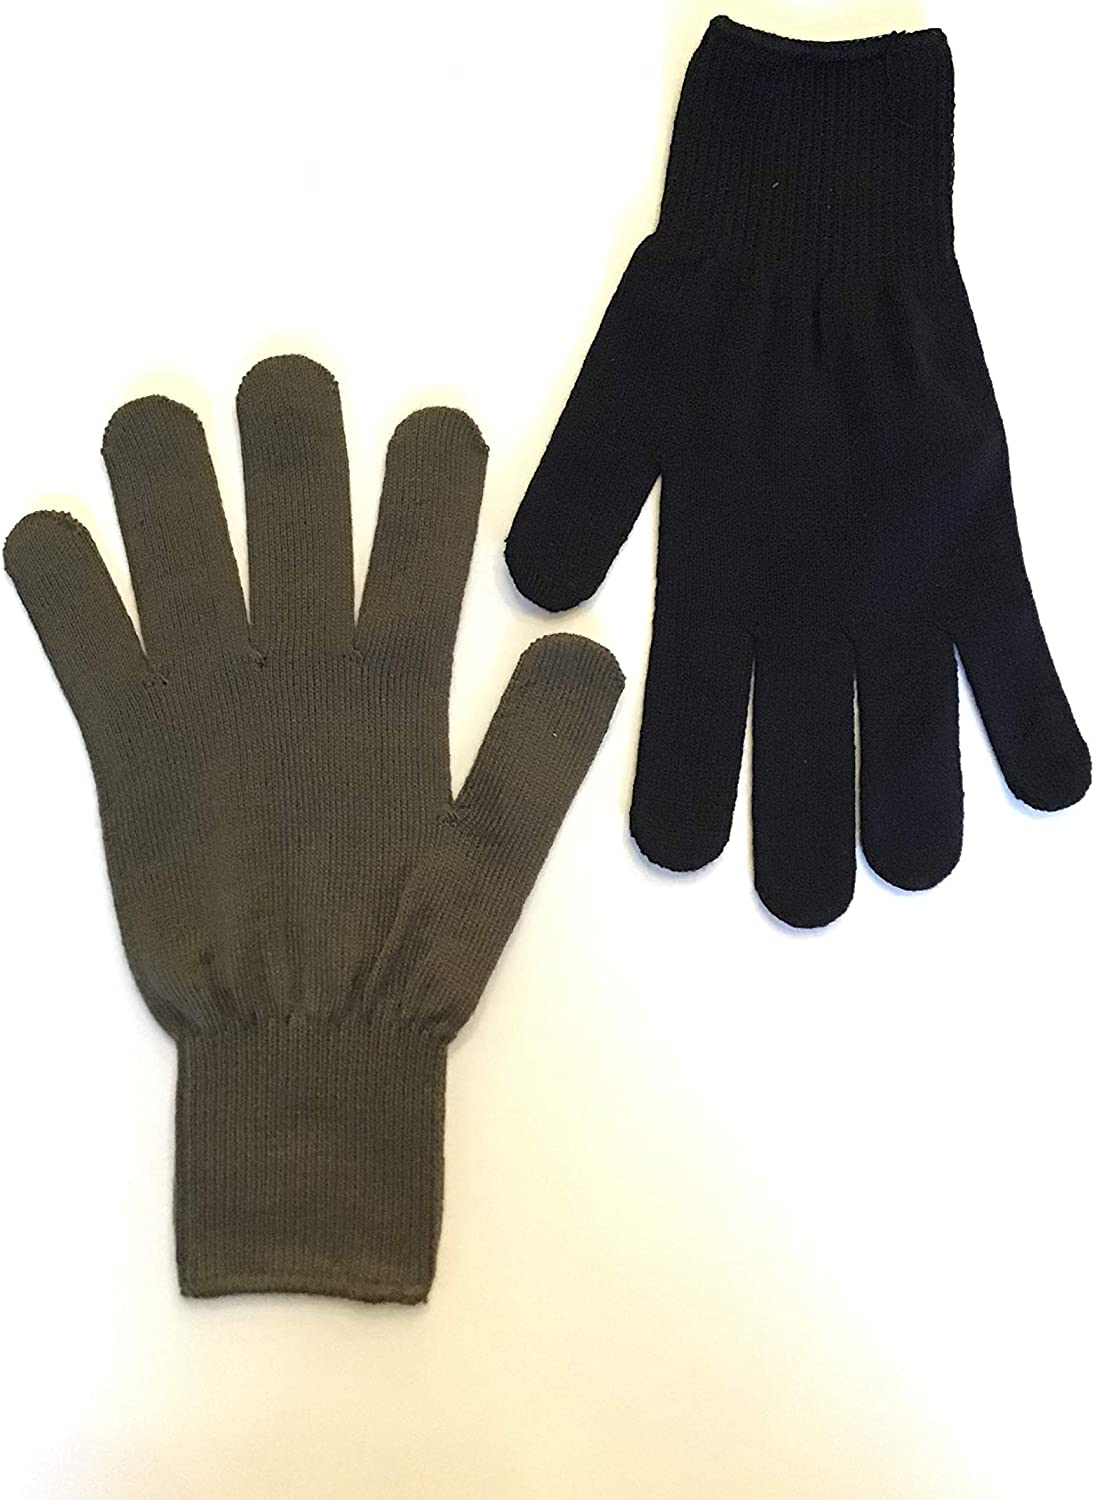 Blueberry Uniforms Polypro Complete Free Shipping Max 50% OFF Glove Liners